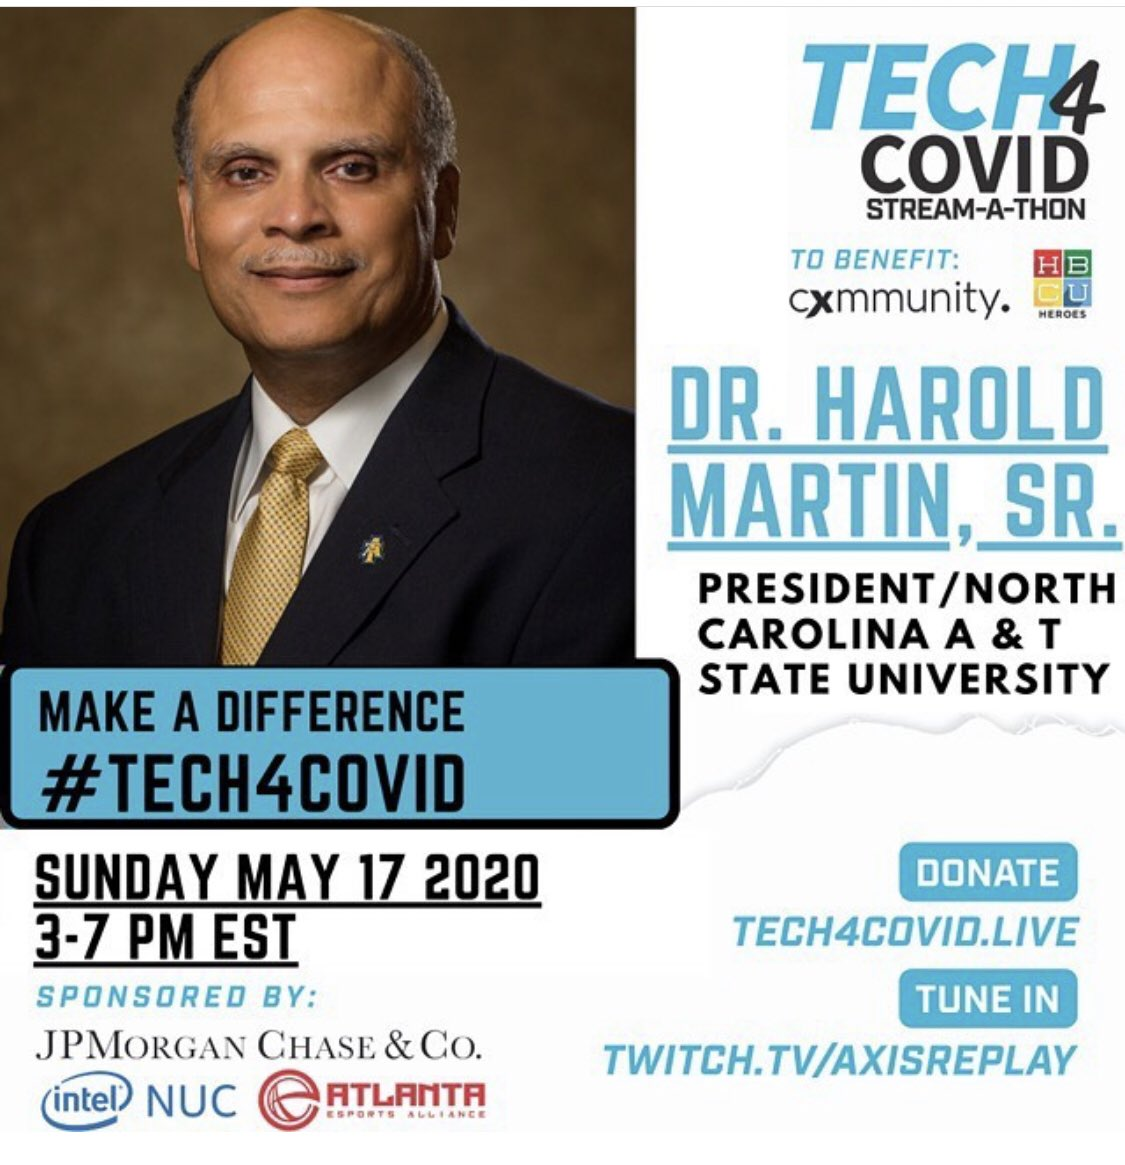 Yet another special initiative. Join @WhoIsHLM along with many #HBCU leaders, @HBCUHeroes and others for #Tech4Covid. Discussing the #Tech needs of the #HBCU community (like wifi and laptops) during this pandemic. Tune in via https://t.co/xedqdP1bhA https://t.co/qcWpKf31cH